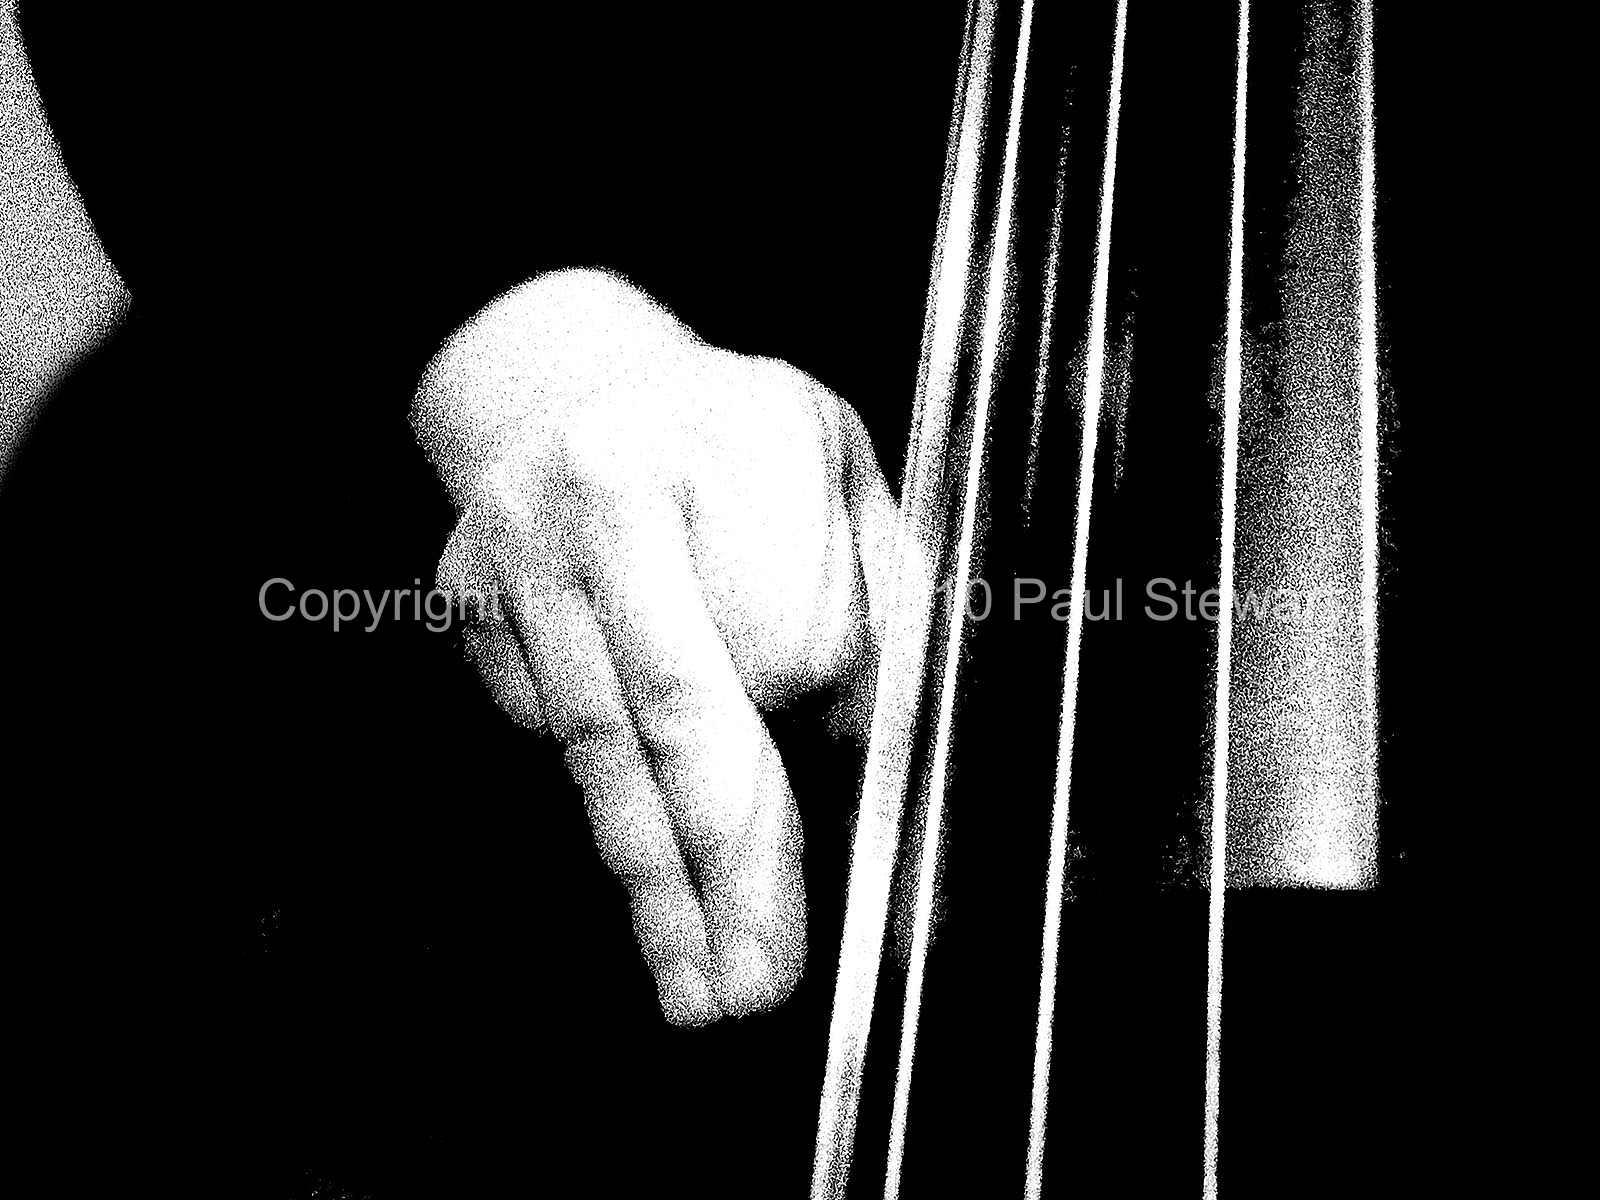 06/06/2007 OPS: Twang - Feel The Bass Press Images for It's Amazing Who You Meet Volume 1 by Paul Stewart These may only be used in conjunction with reviews of the book or exhibition without further permission ©Paul Stewart 2010 07917652636